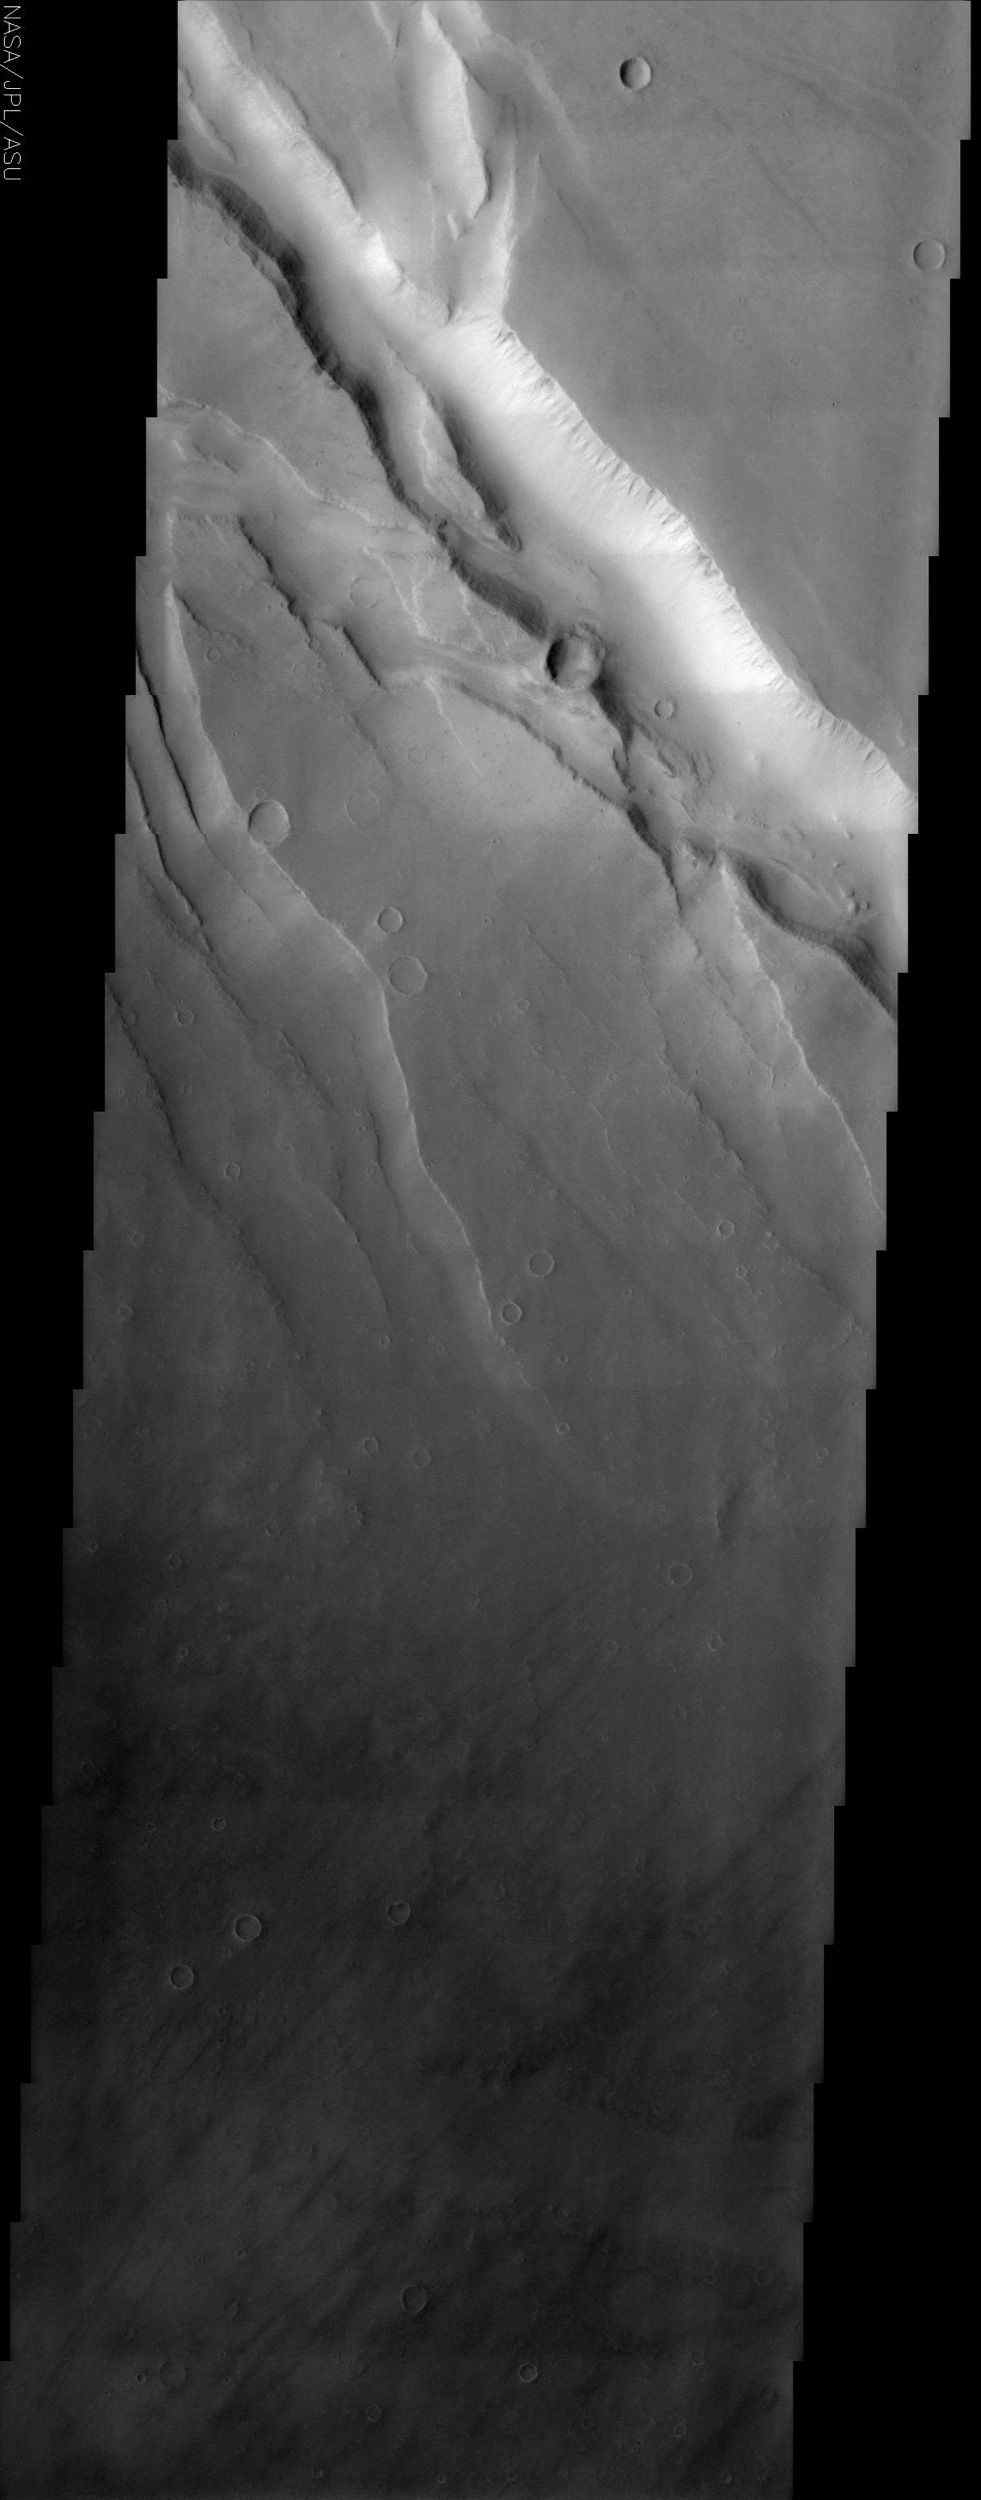 This NASA Mars Odyssey image covers a tract of plateau territory called Ophir Planum. The most obvious features in this scene are the fractures (ranging from 1 to 5 km wide) running from the upper left to lower right.